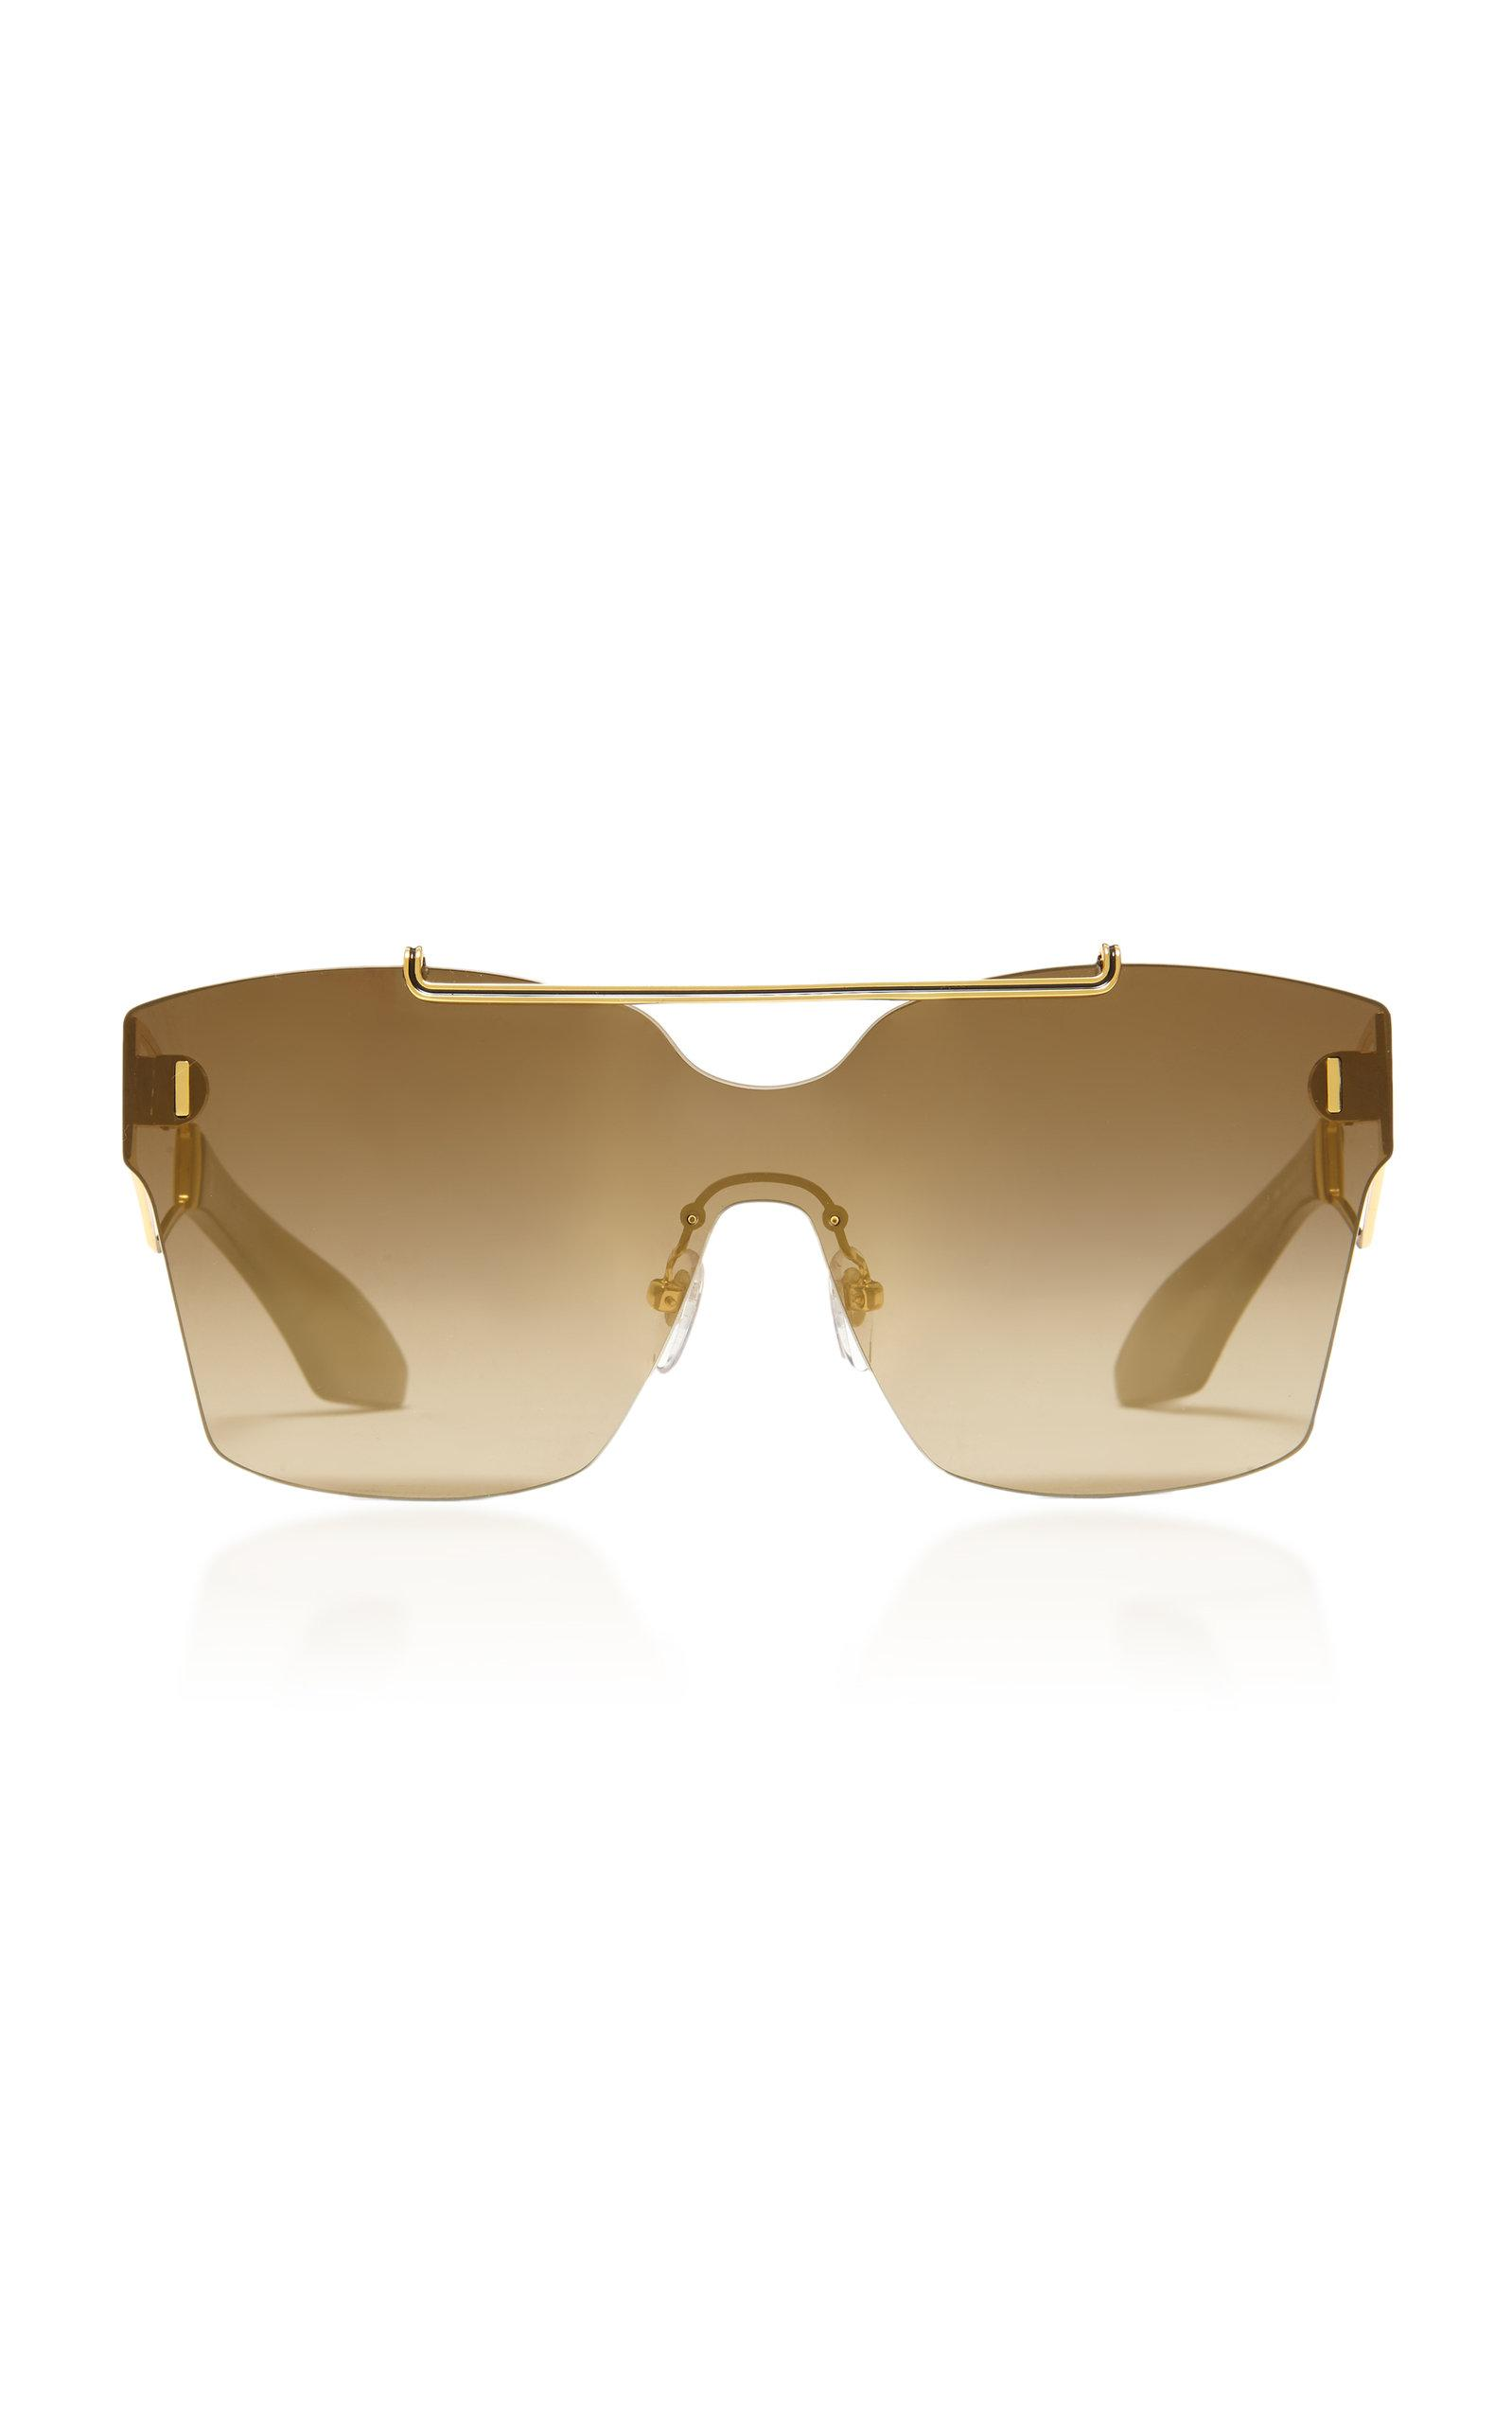 Philippe Chevallier Mask Rimless Sunglasses In Green